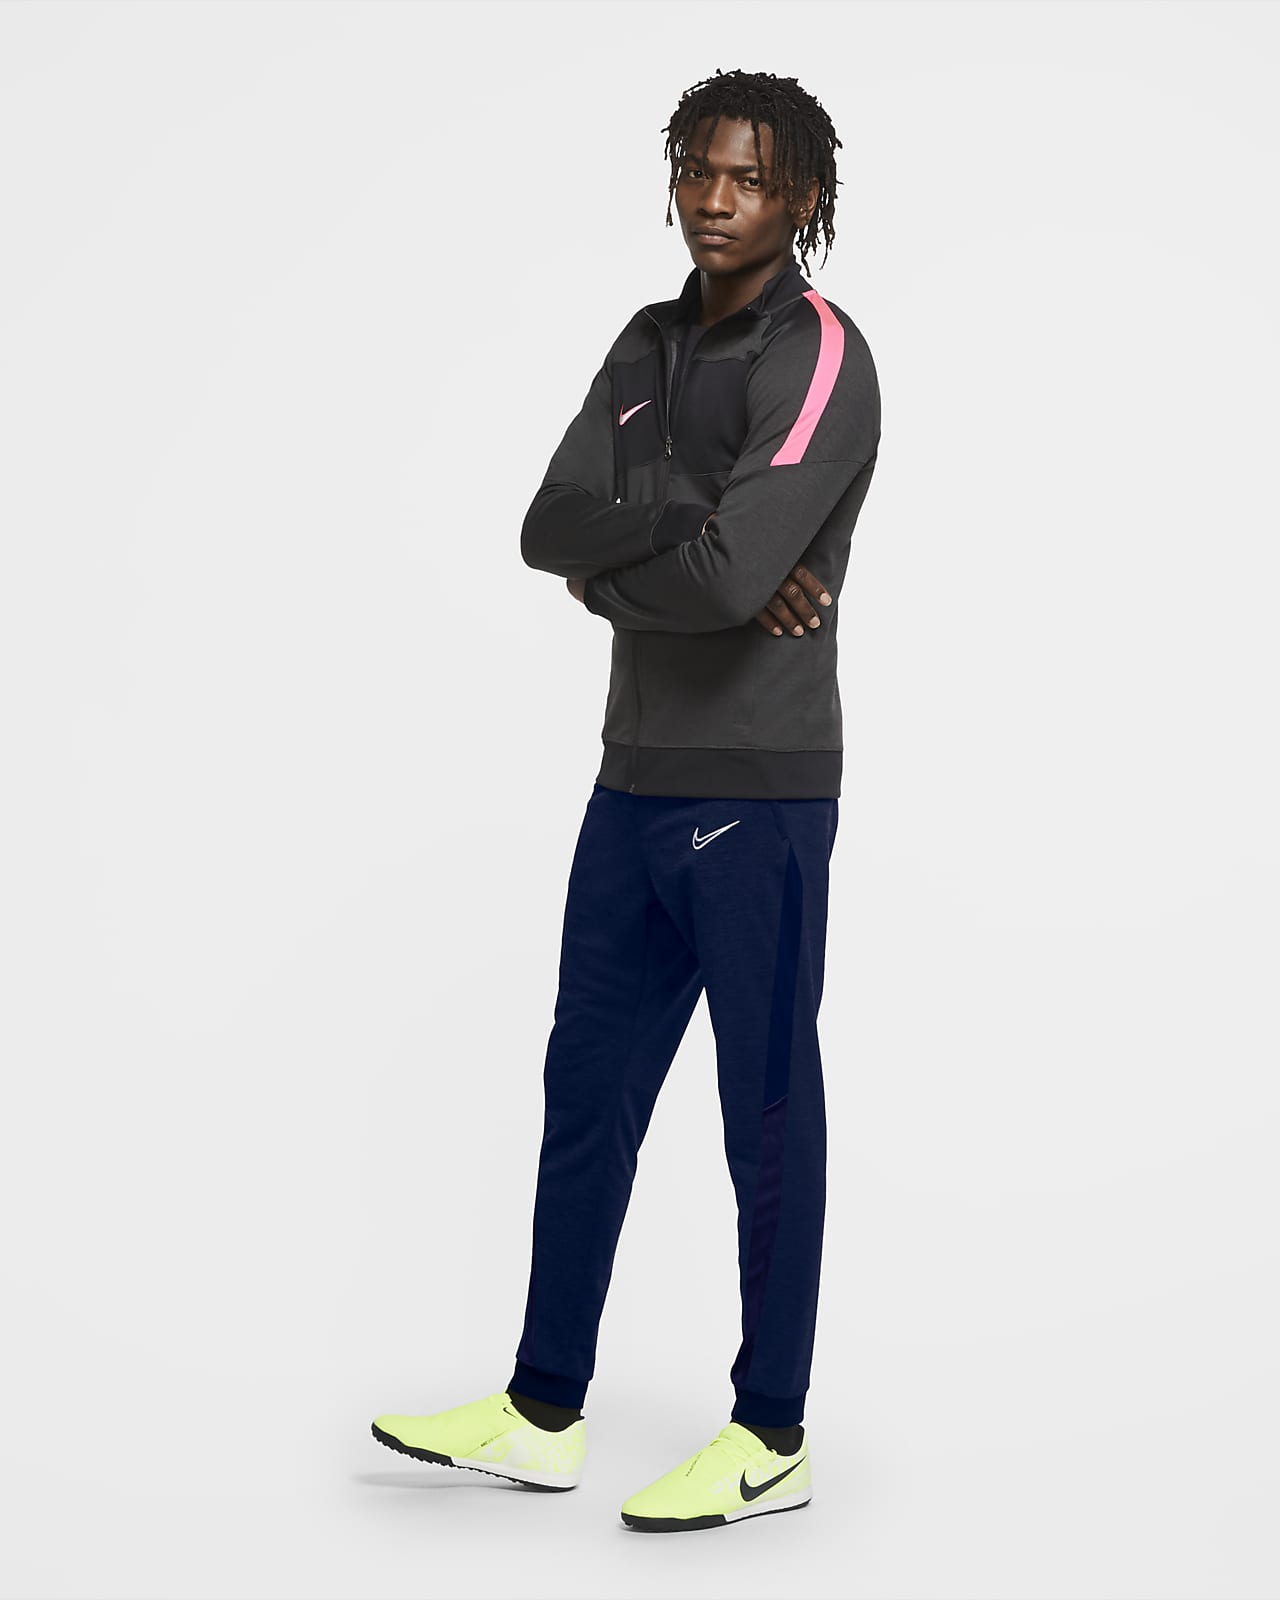 no Confuso Siempre  Nike Dri-FIT Academy Men's Knit Football Tracksuit Bottoms. Nike GB